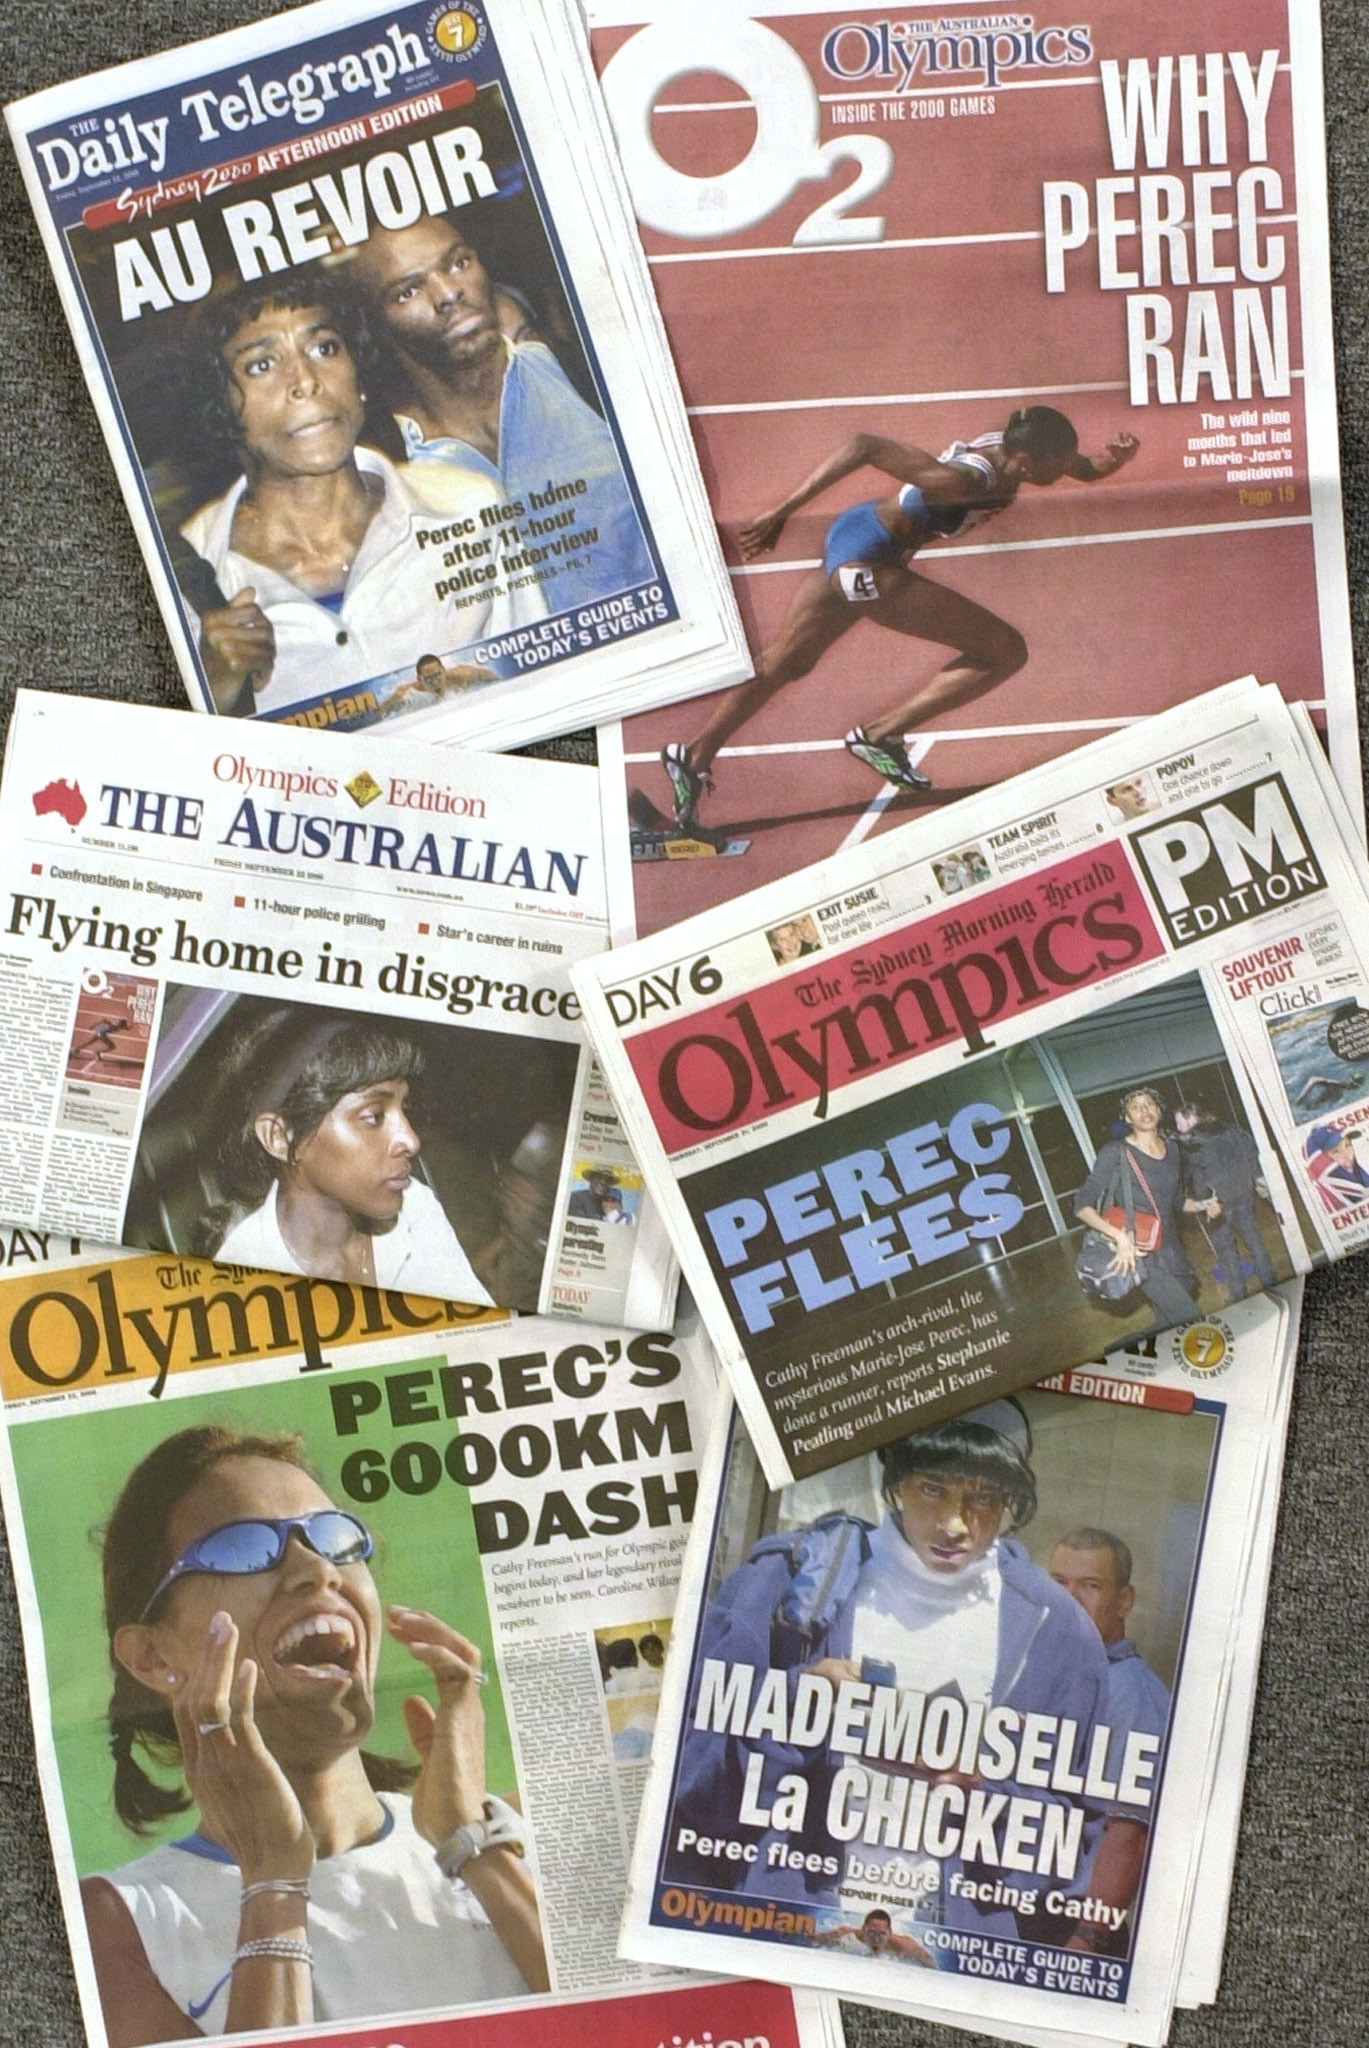 Cathy Freeman's greatest rival, France's defending Olympic 400m champion Marie-José Pérec, fled Sydney 2000 before the event had even started claiming she was the victim of an unfair campaign of dirty tricks by the Australian media ©Getty Images